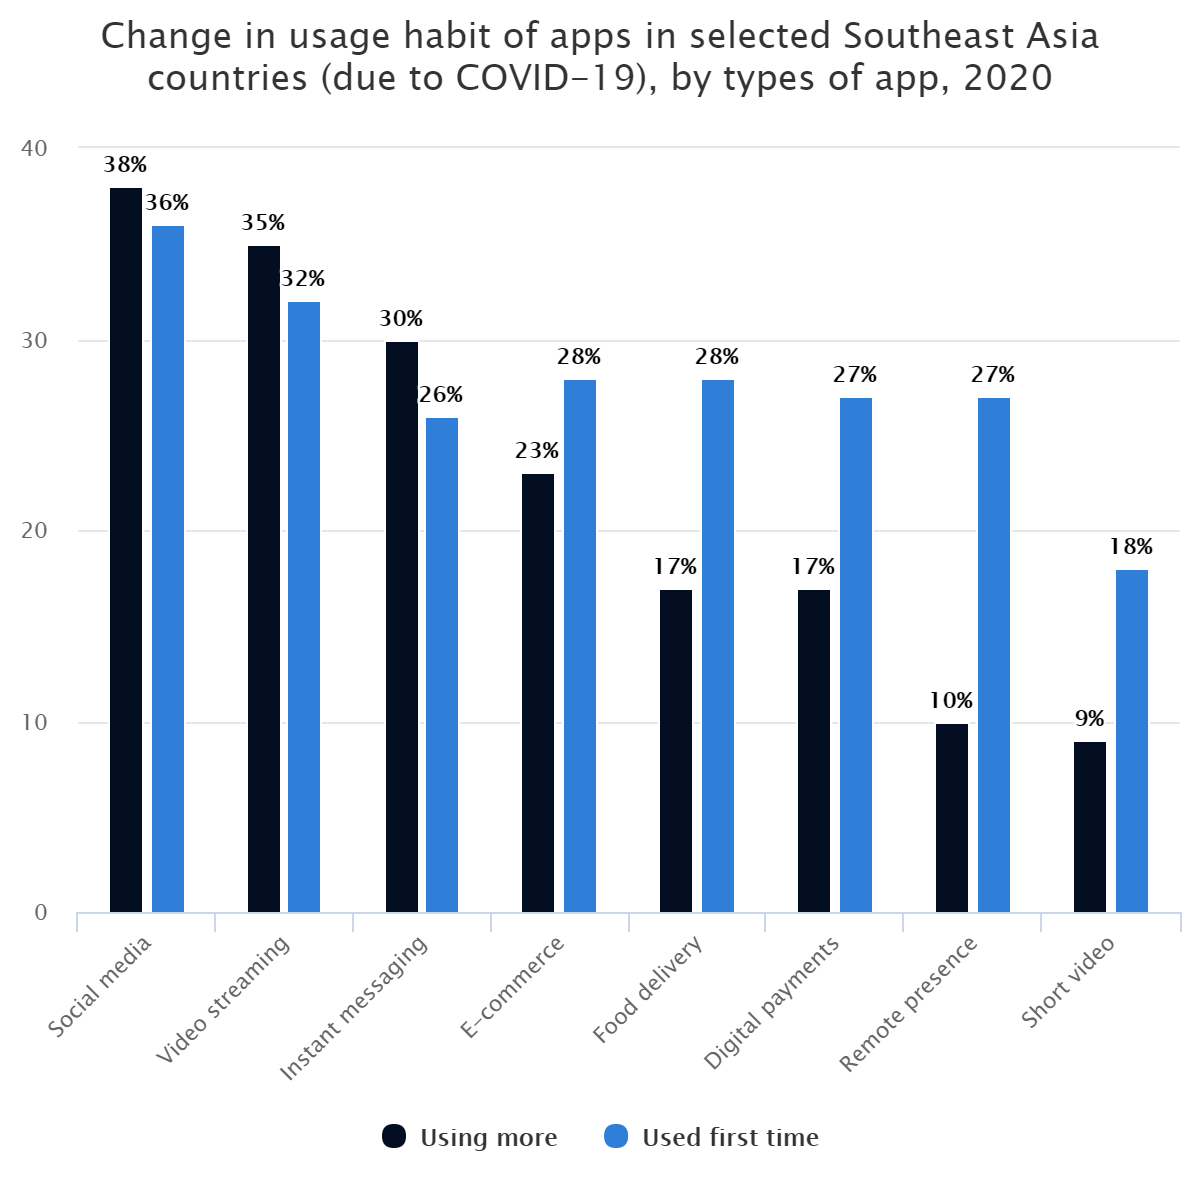 Change in usage habit of apps in selected Southeast Asia countries (due to COVID-19), by types of app, 2020